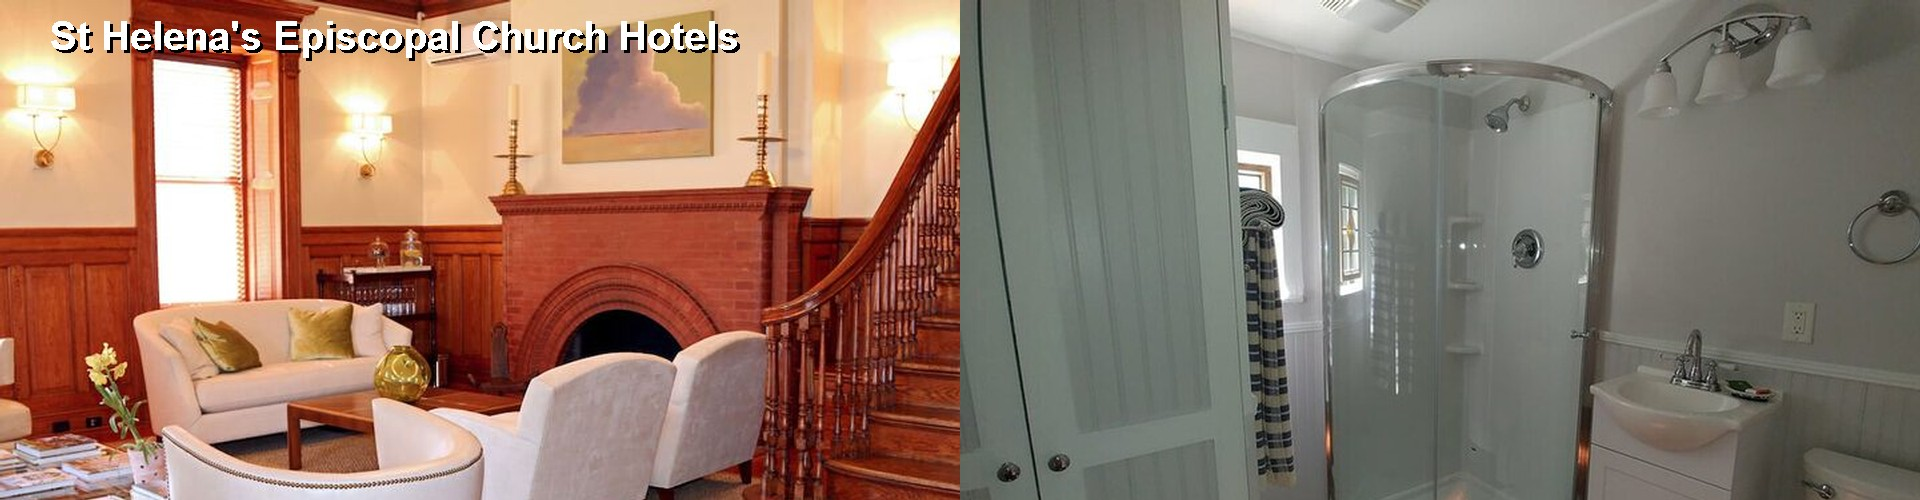 5 Best Hotels near St Helena's Episcopal Church